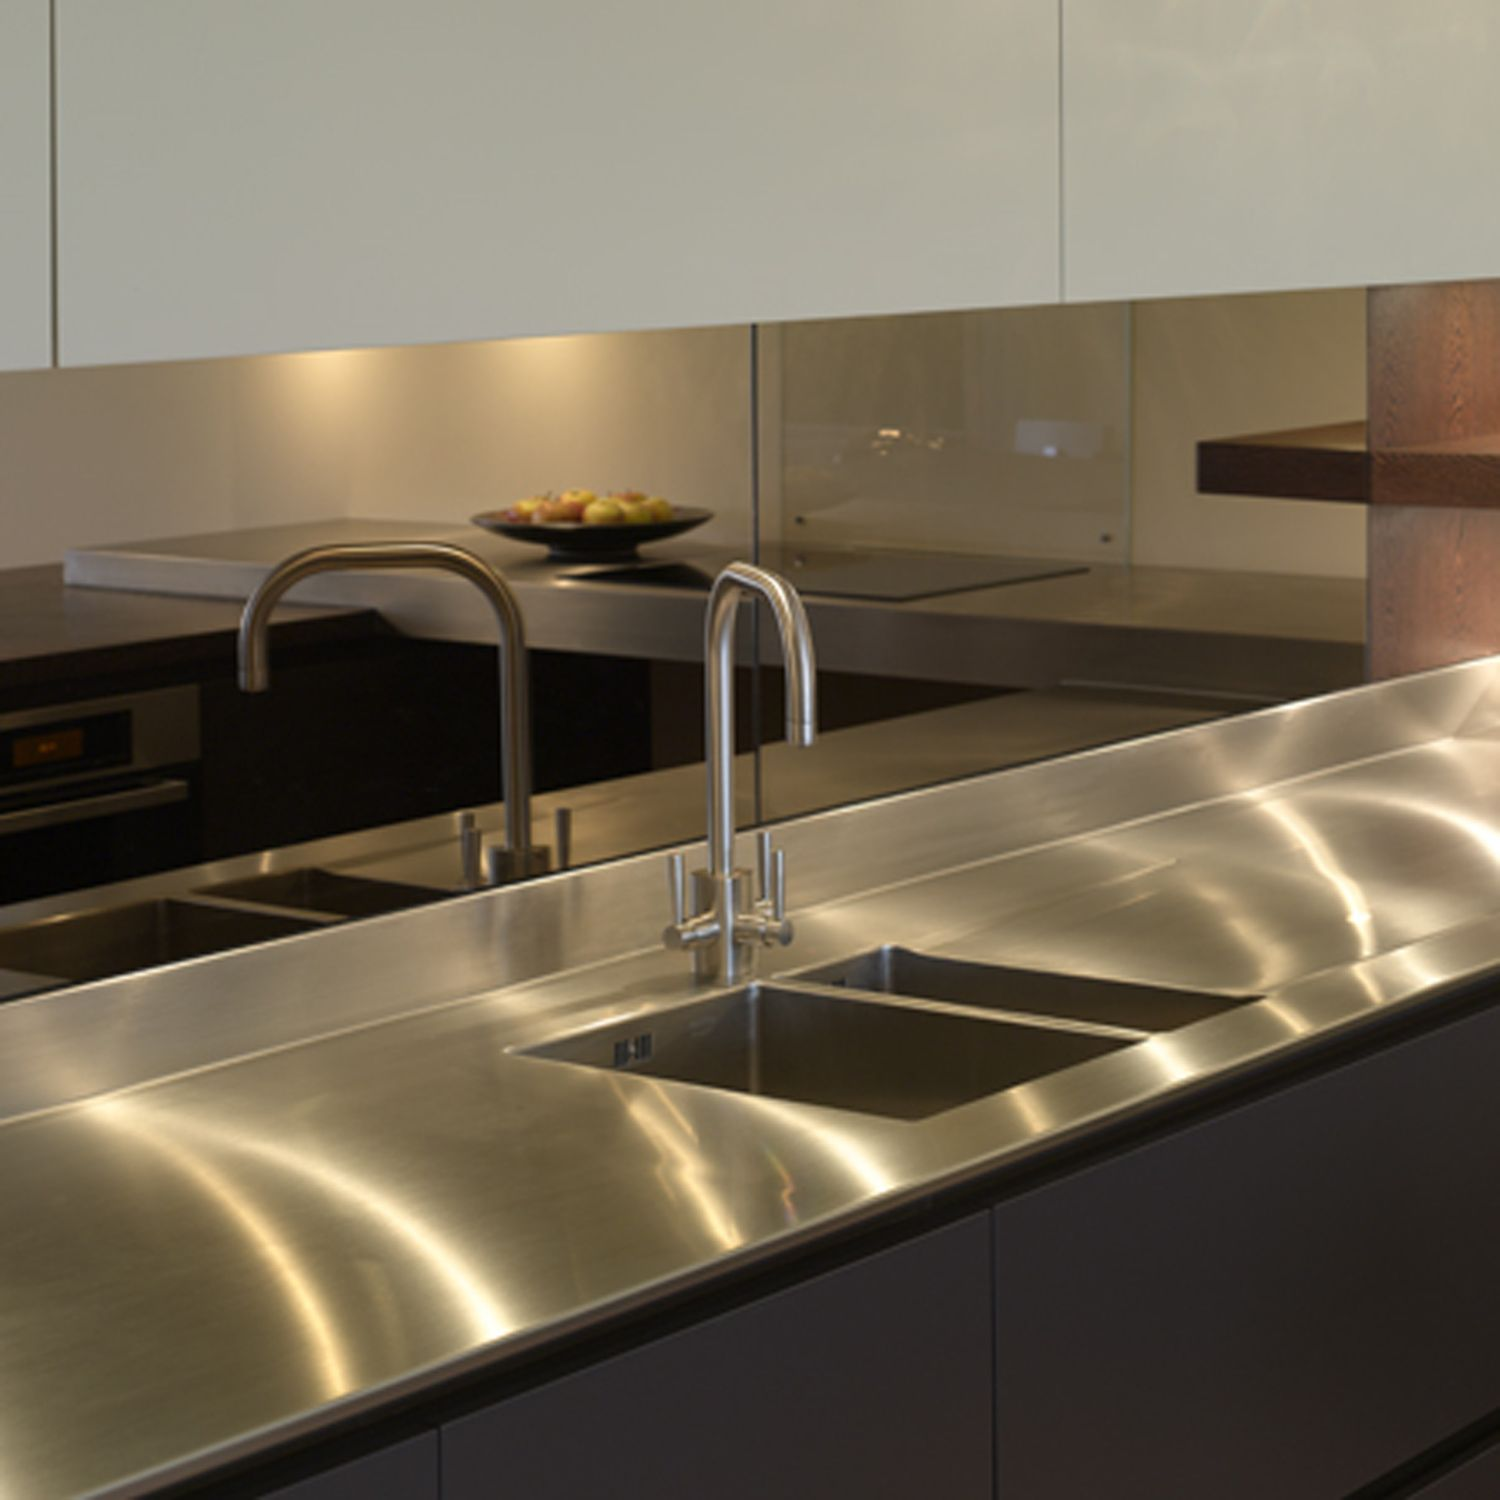 Stainless steel surface and mirror splashback in for Sink splashback ideas